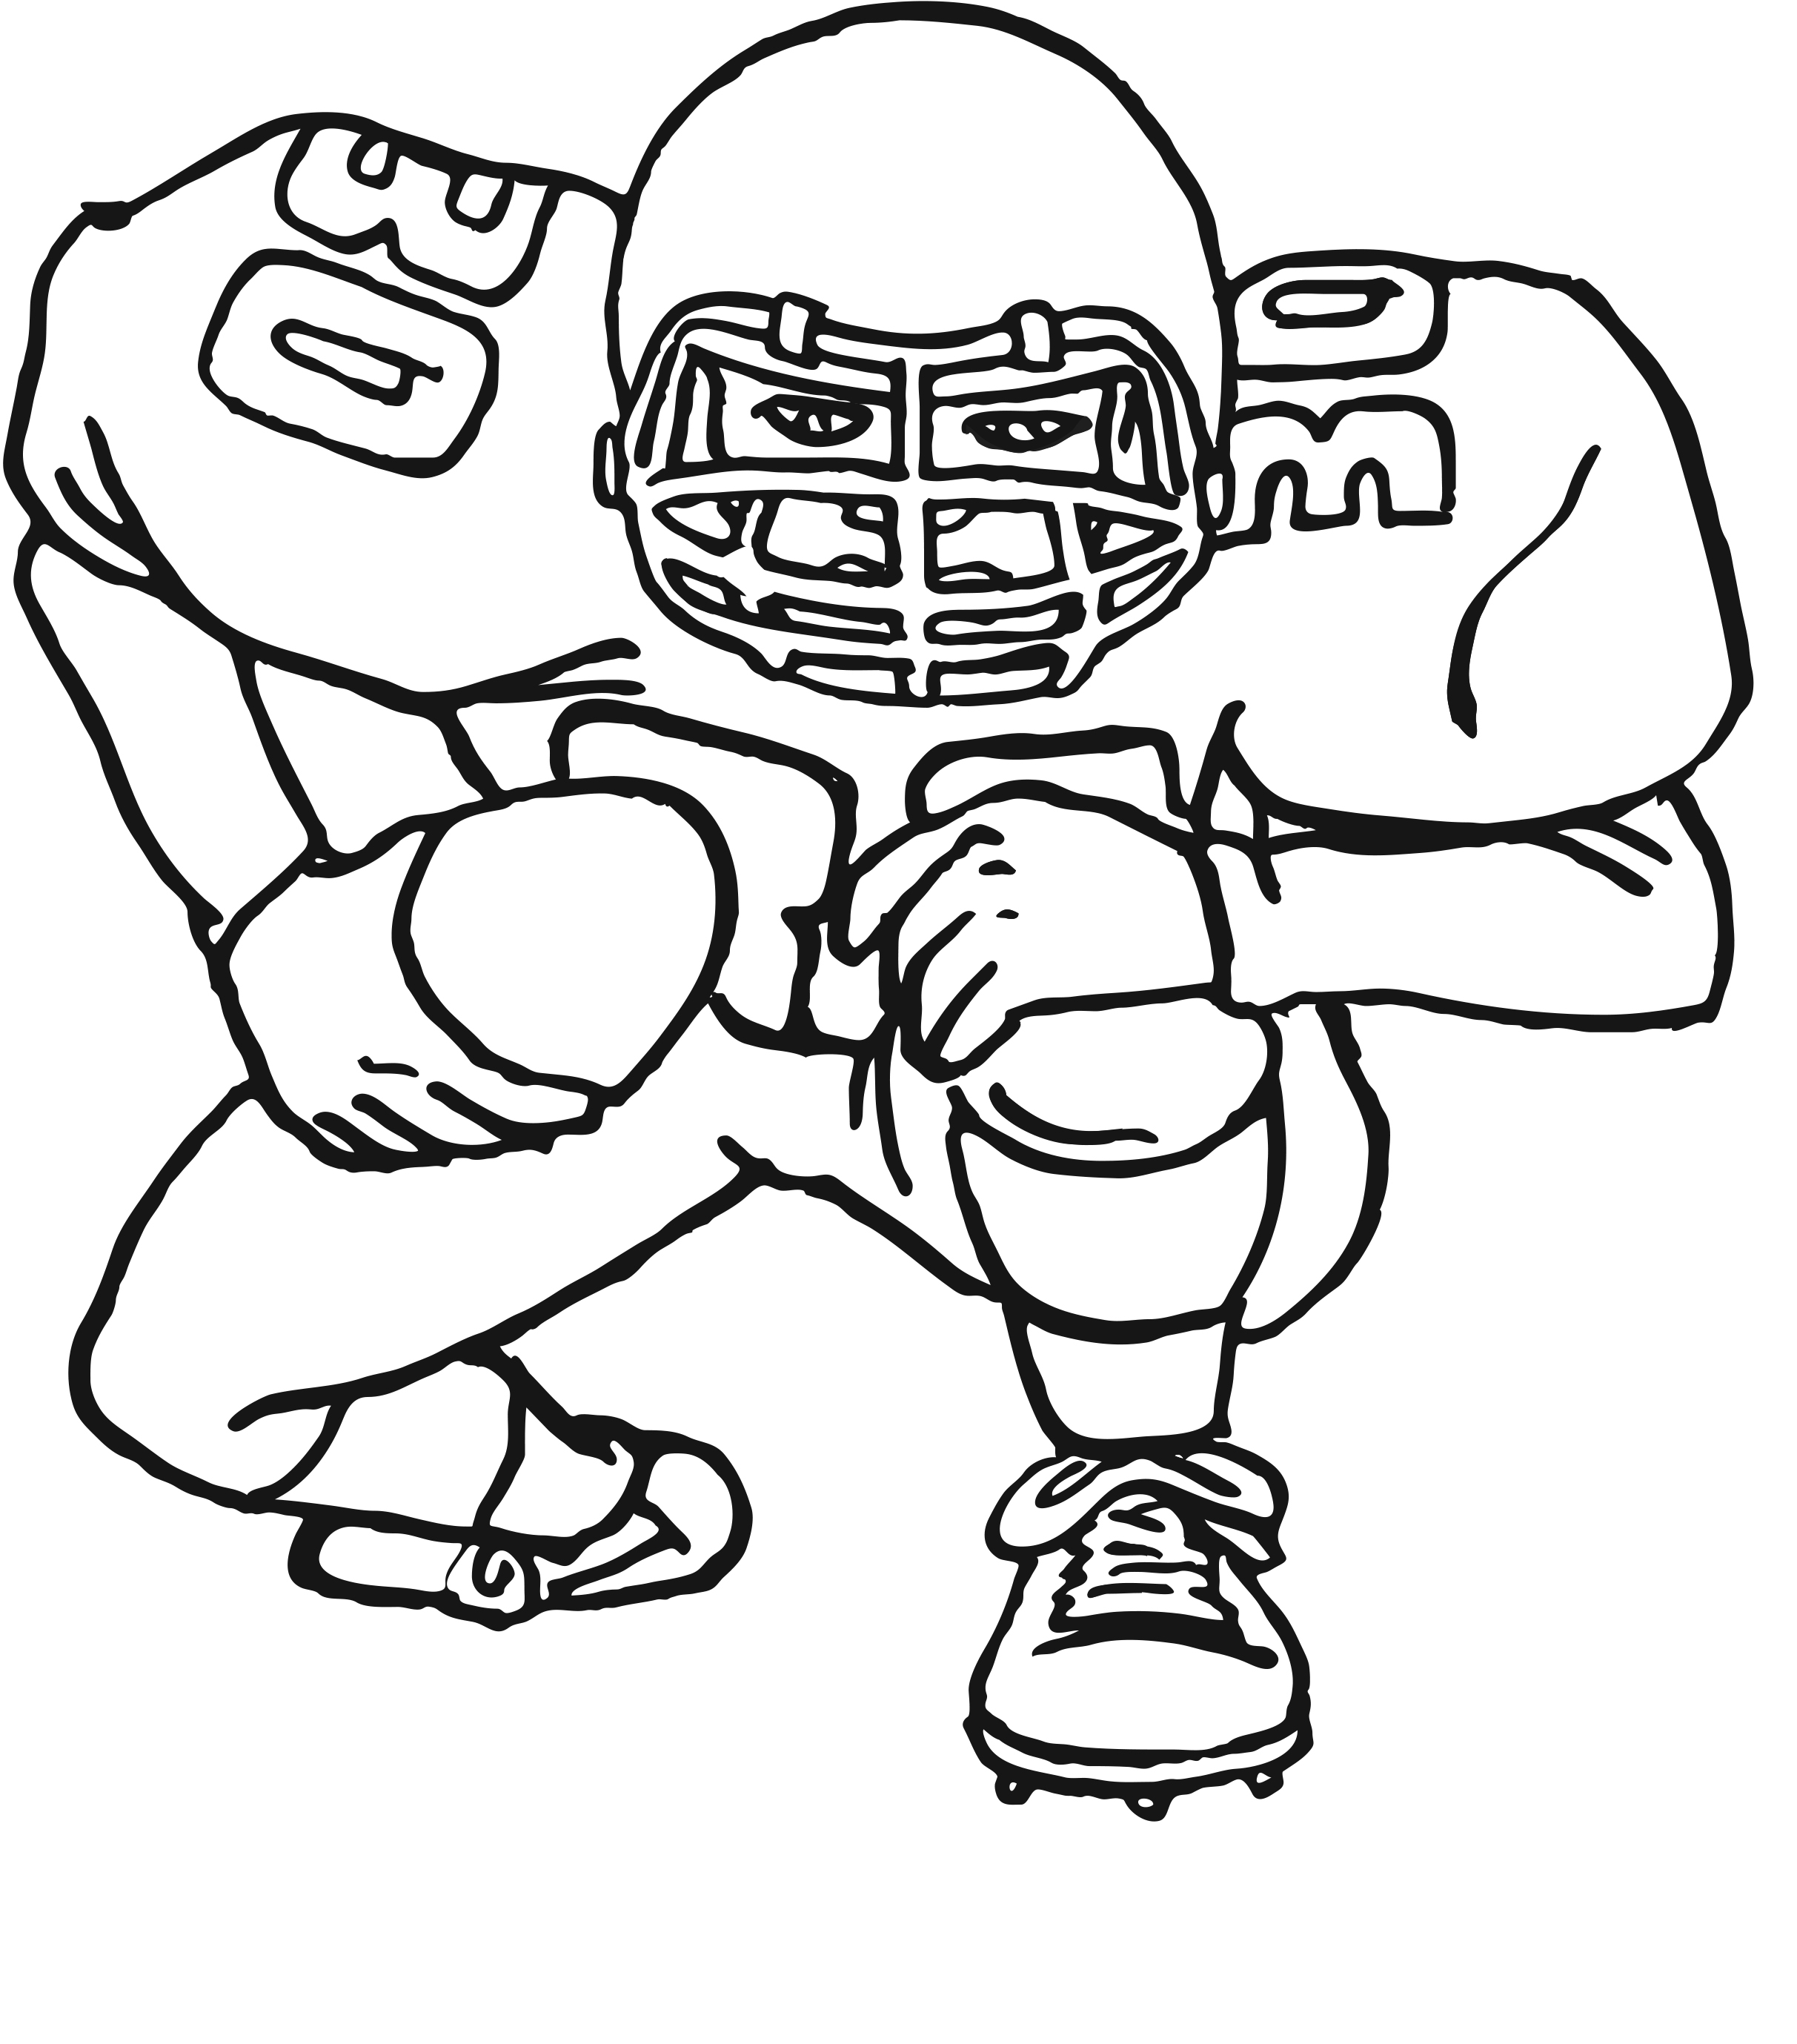 football images to colour football coloring pages kids should have five facts to football images colour